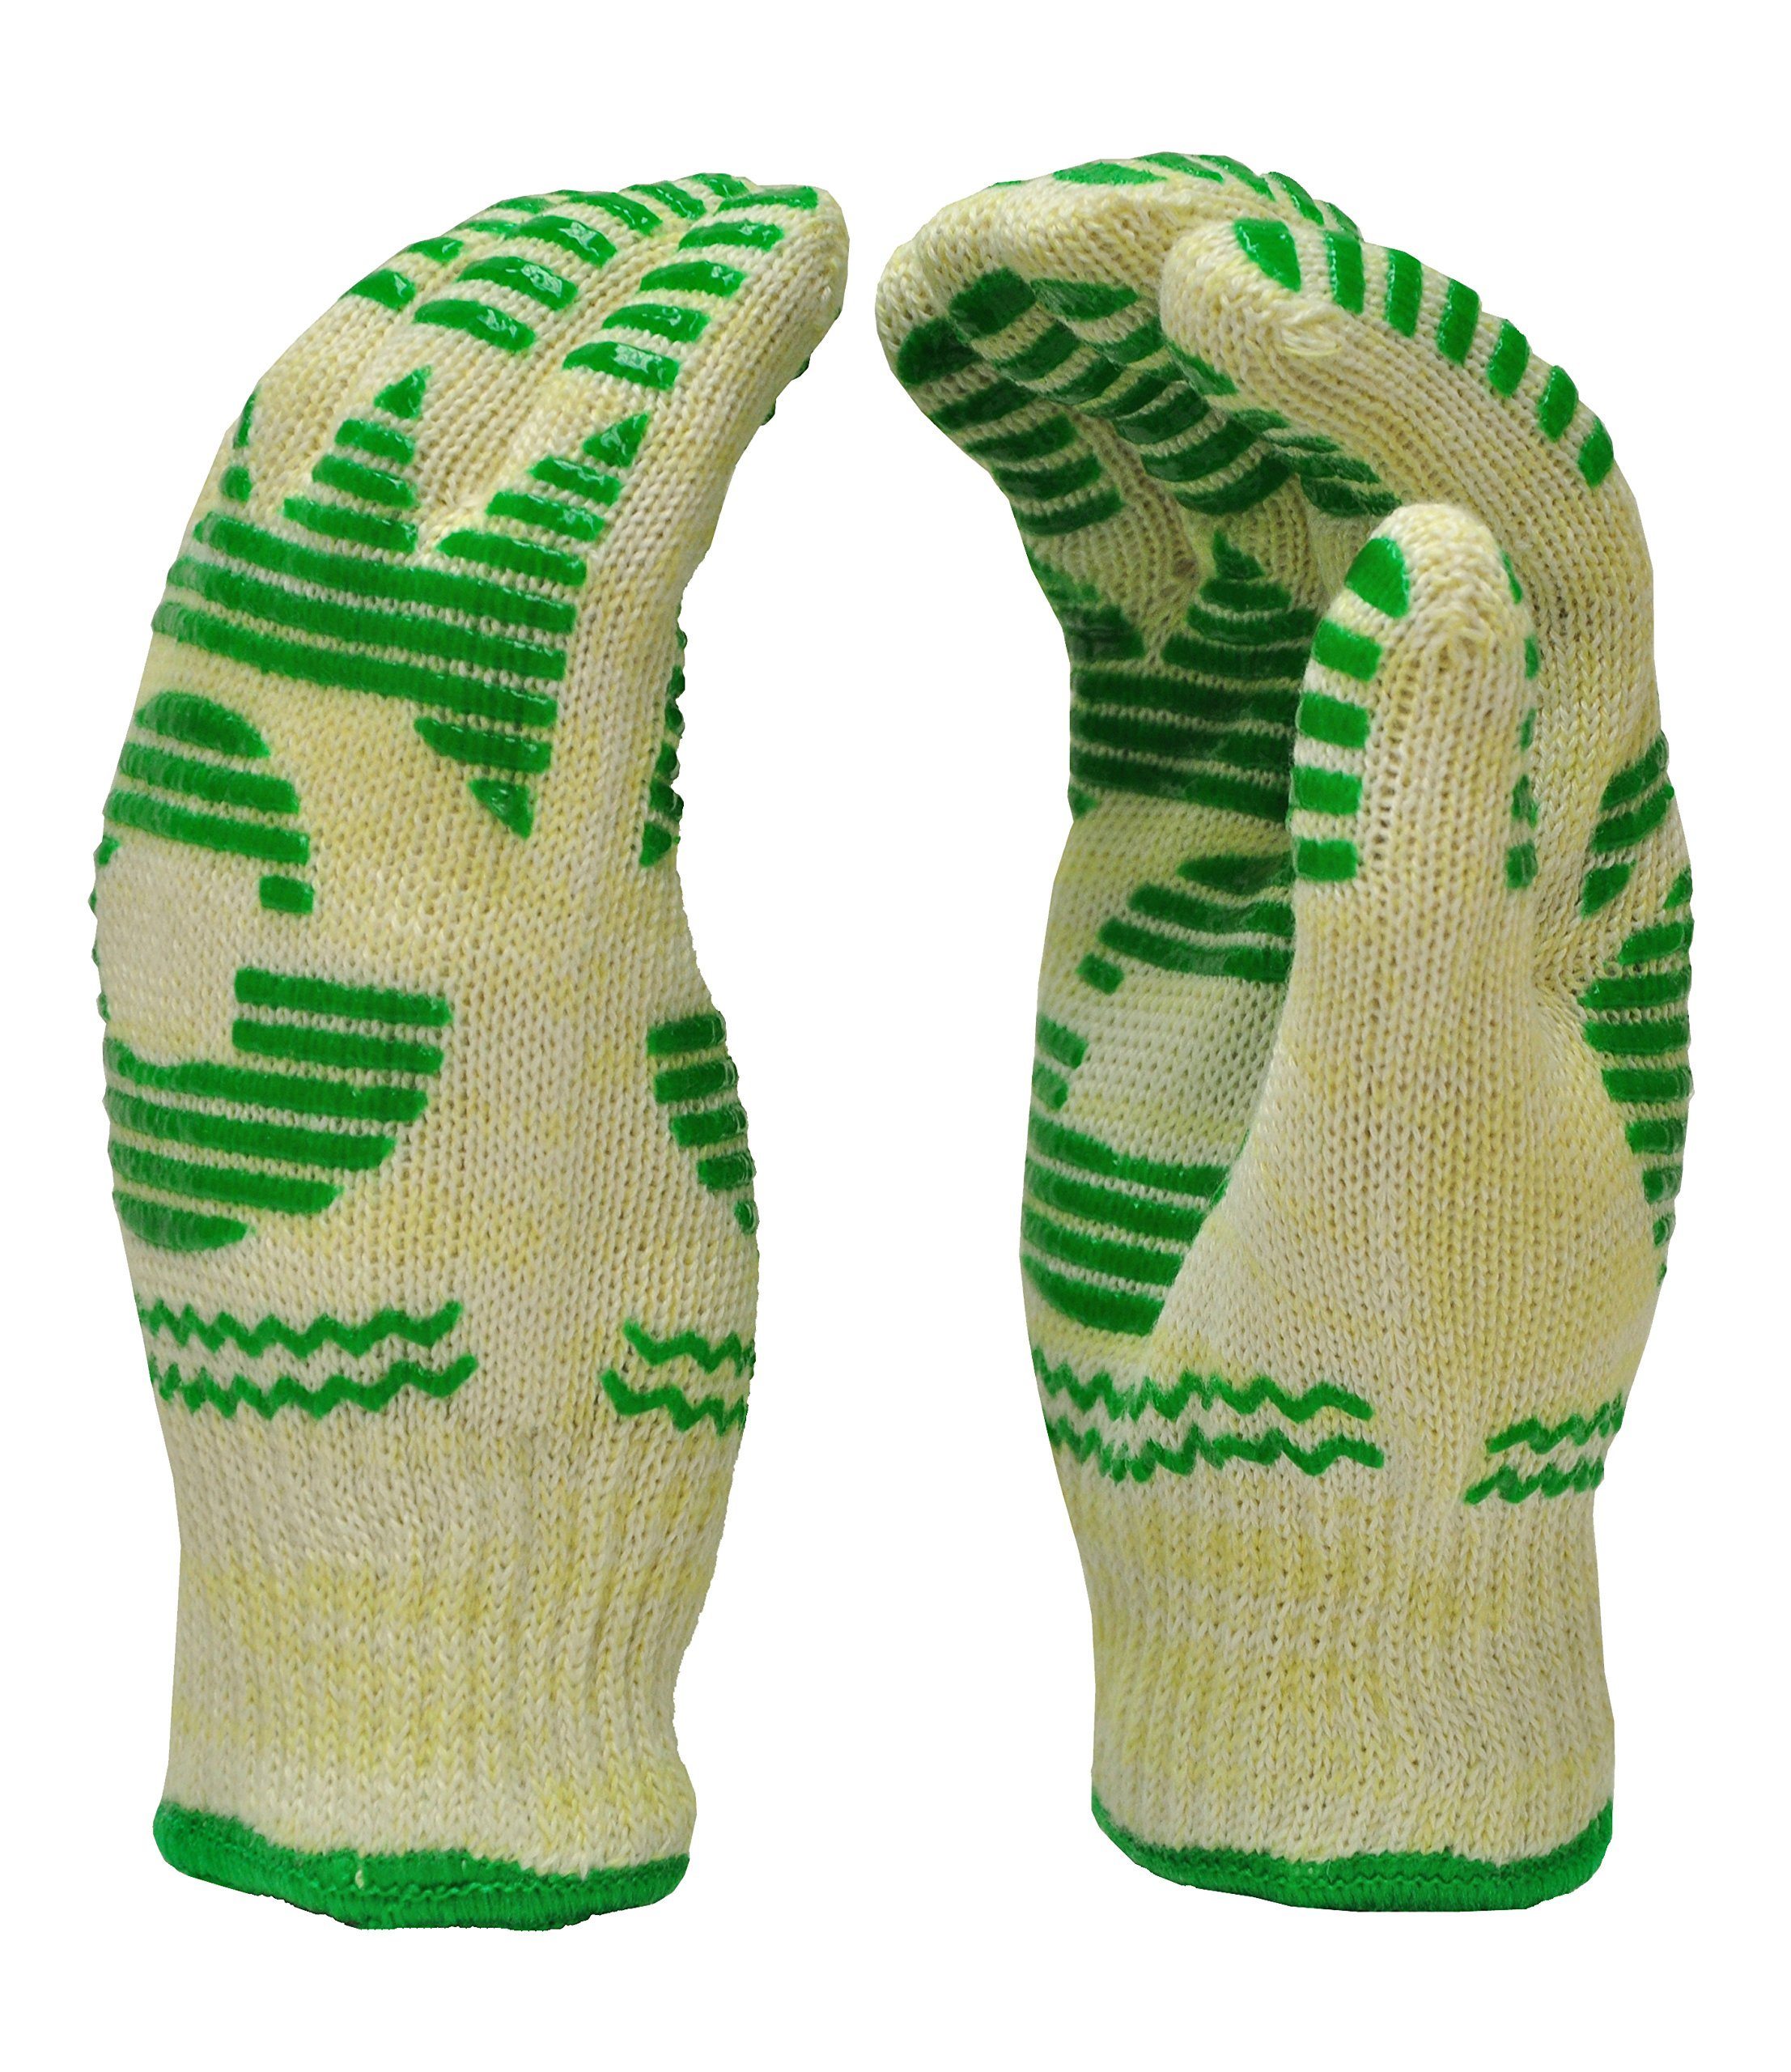 GF Gloves 1684M-12 Heat Resistant Oven Gloves, Withstands Extreme Heat, Flexible 5 Finger Oven Mitt, Medium (Pack of 12)